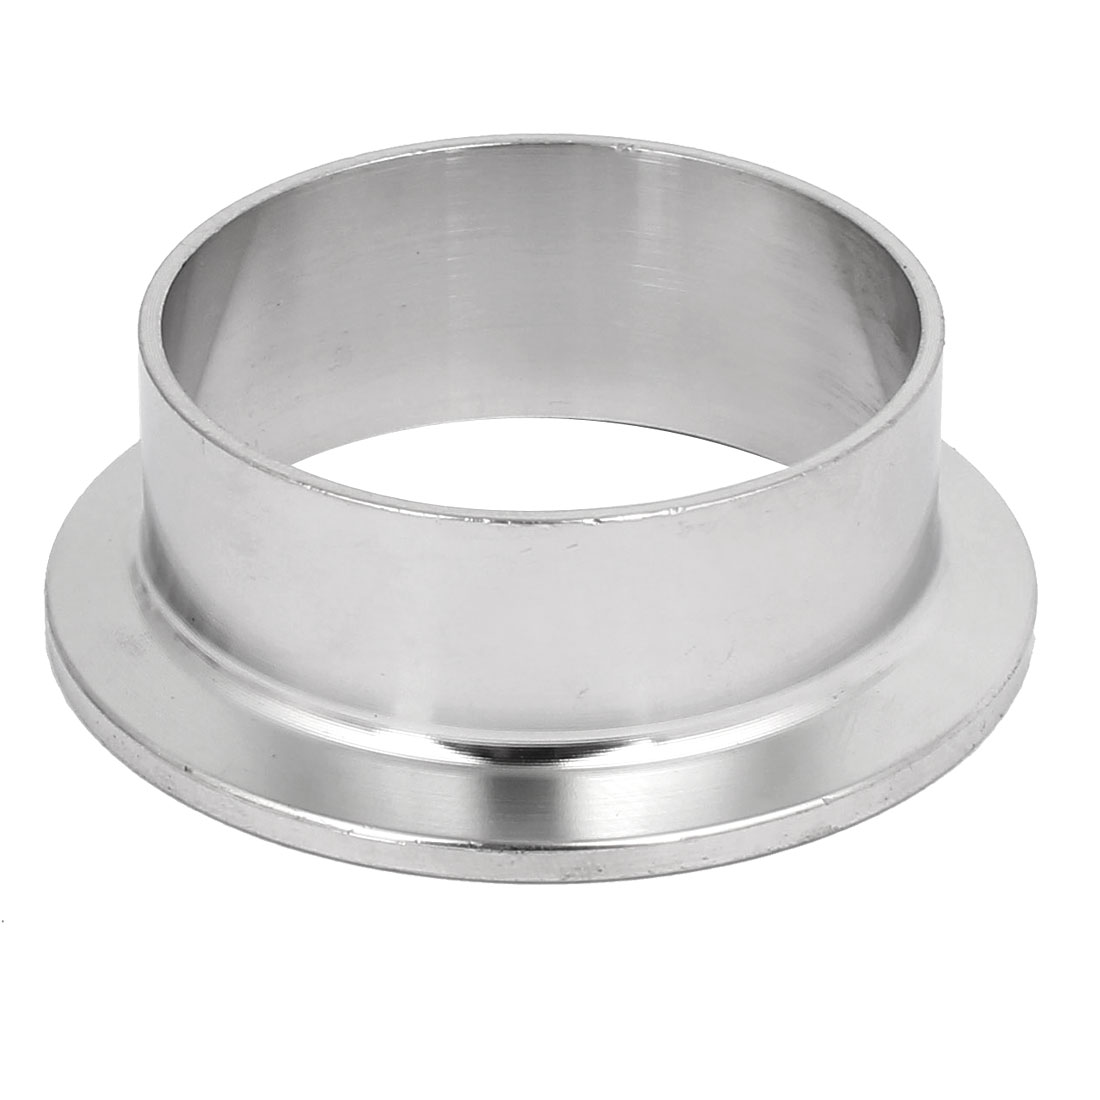 304 Stainless Steel 51mm OD Sanitary Pipe Weld on Ferrule Fits 2 Tri Clamp 273mm od sanitary weld on 286mm ferrule tri clamp stainless steel welding pipe fitting ss304 sw 273 page 7